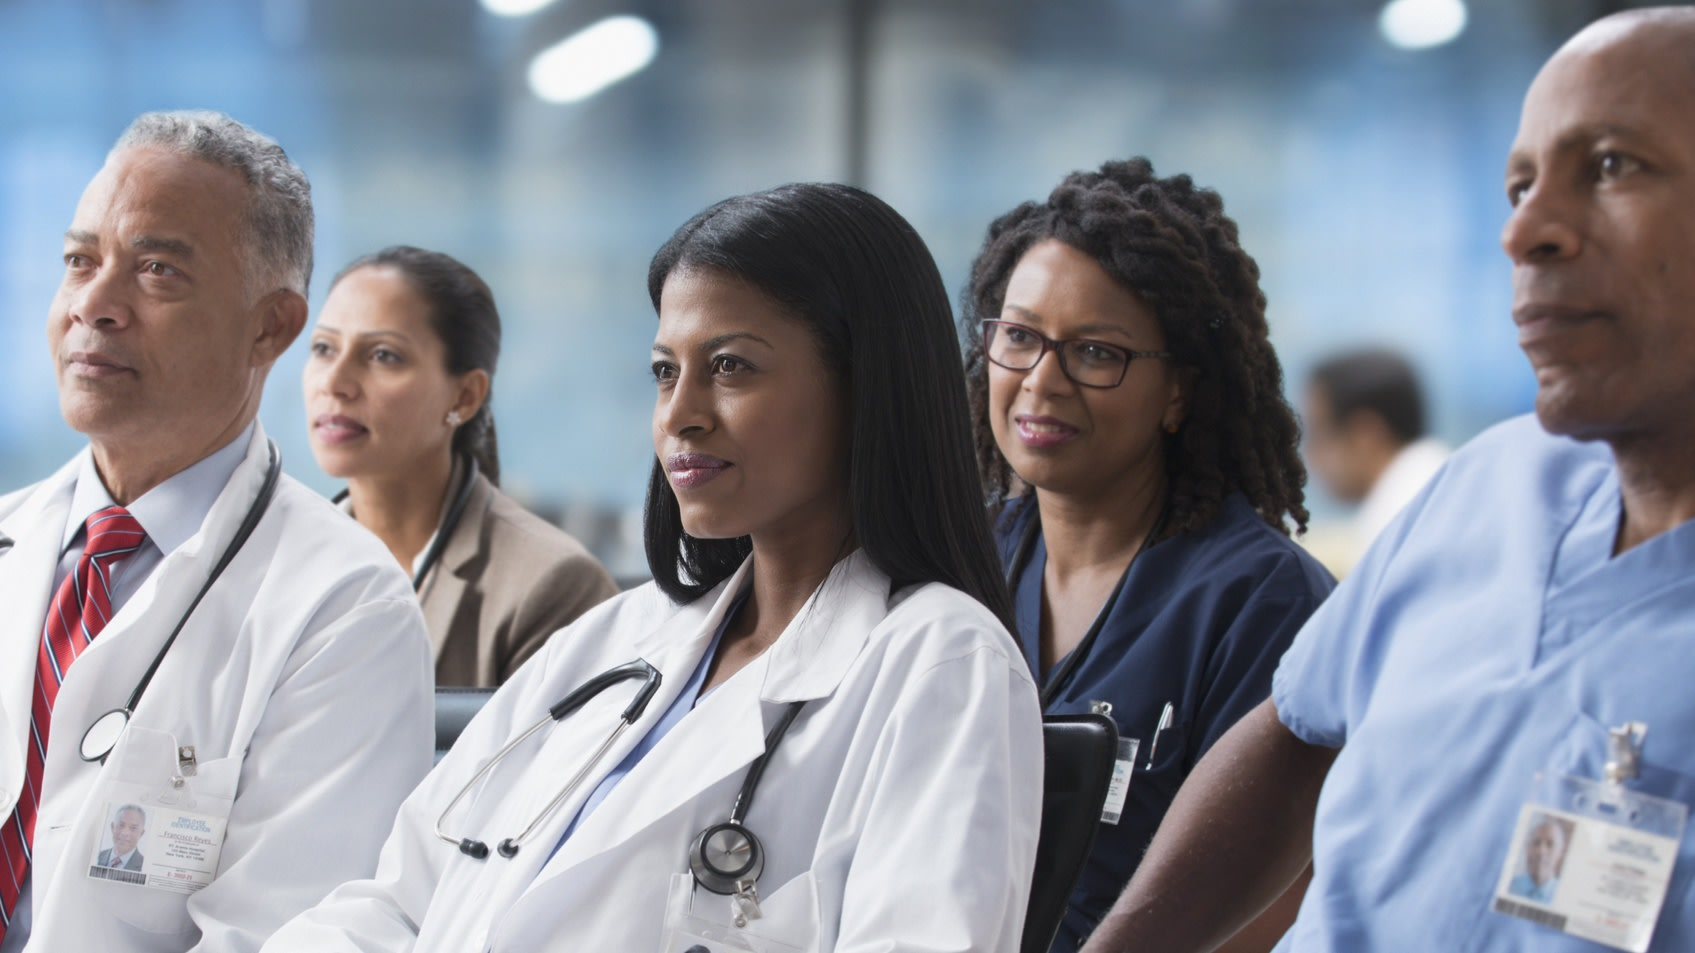 There's Been A Surge In Black Medical School Applicants Amid COVID's Devastation On BIPOC Communities